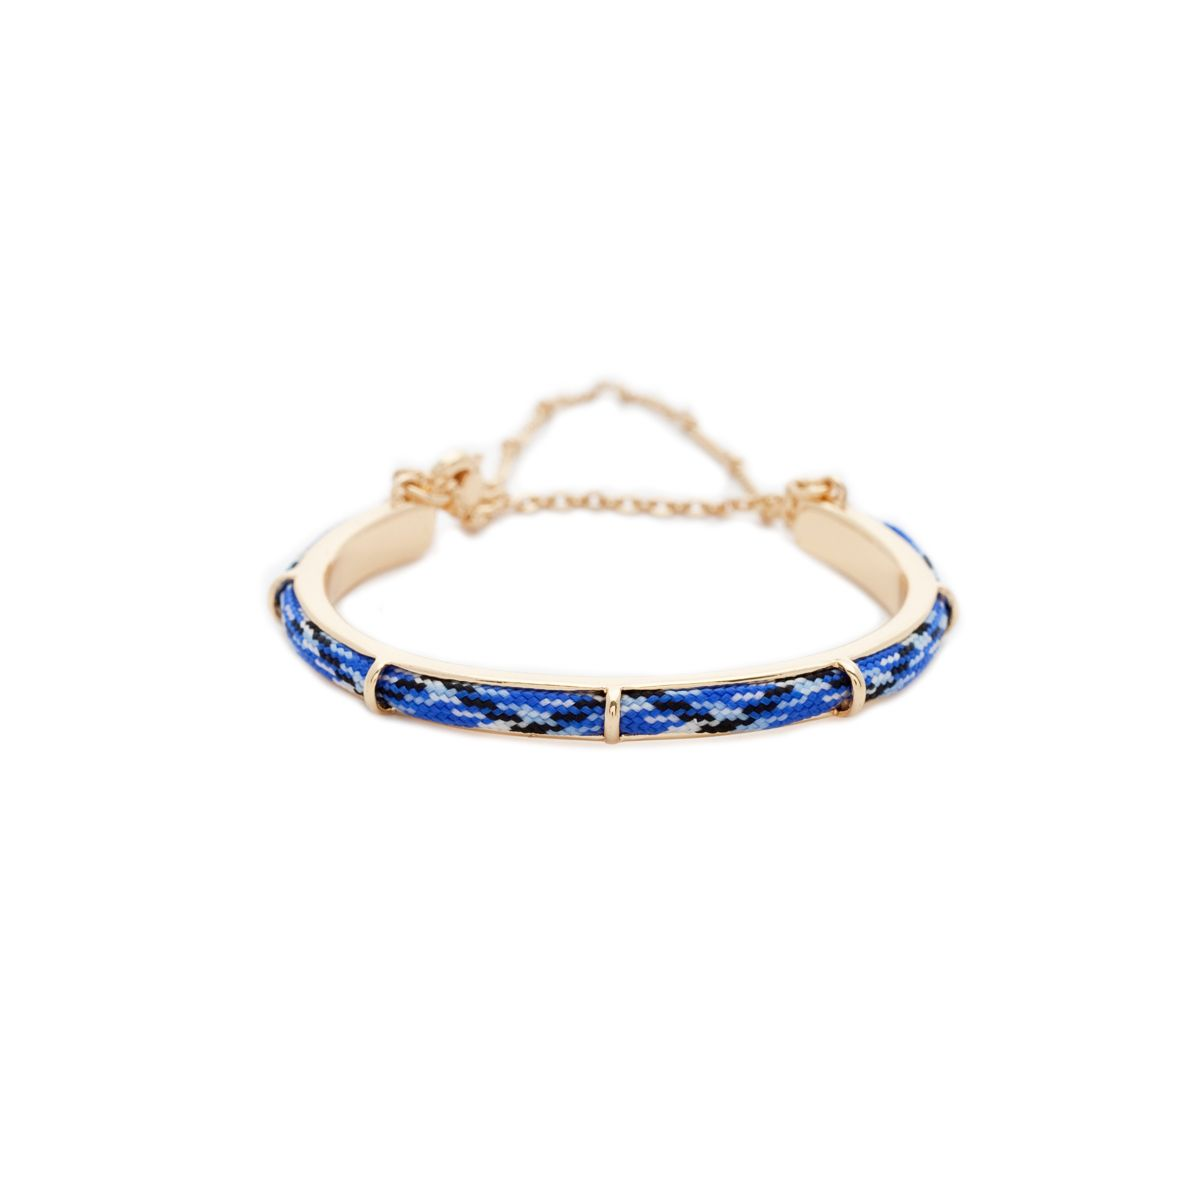 An adorable friendship bracelet for your flower girls take a